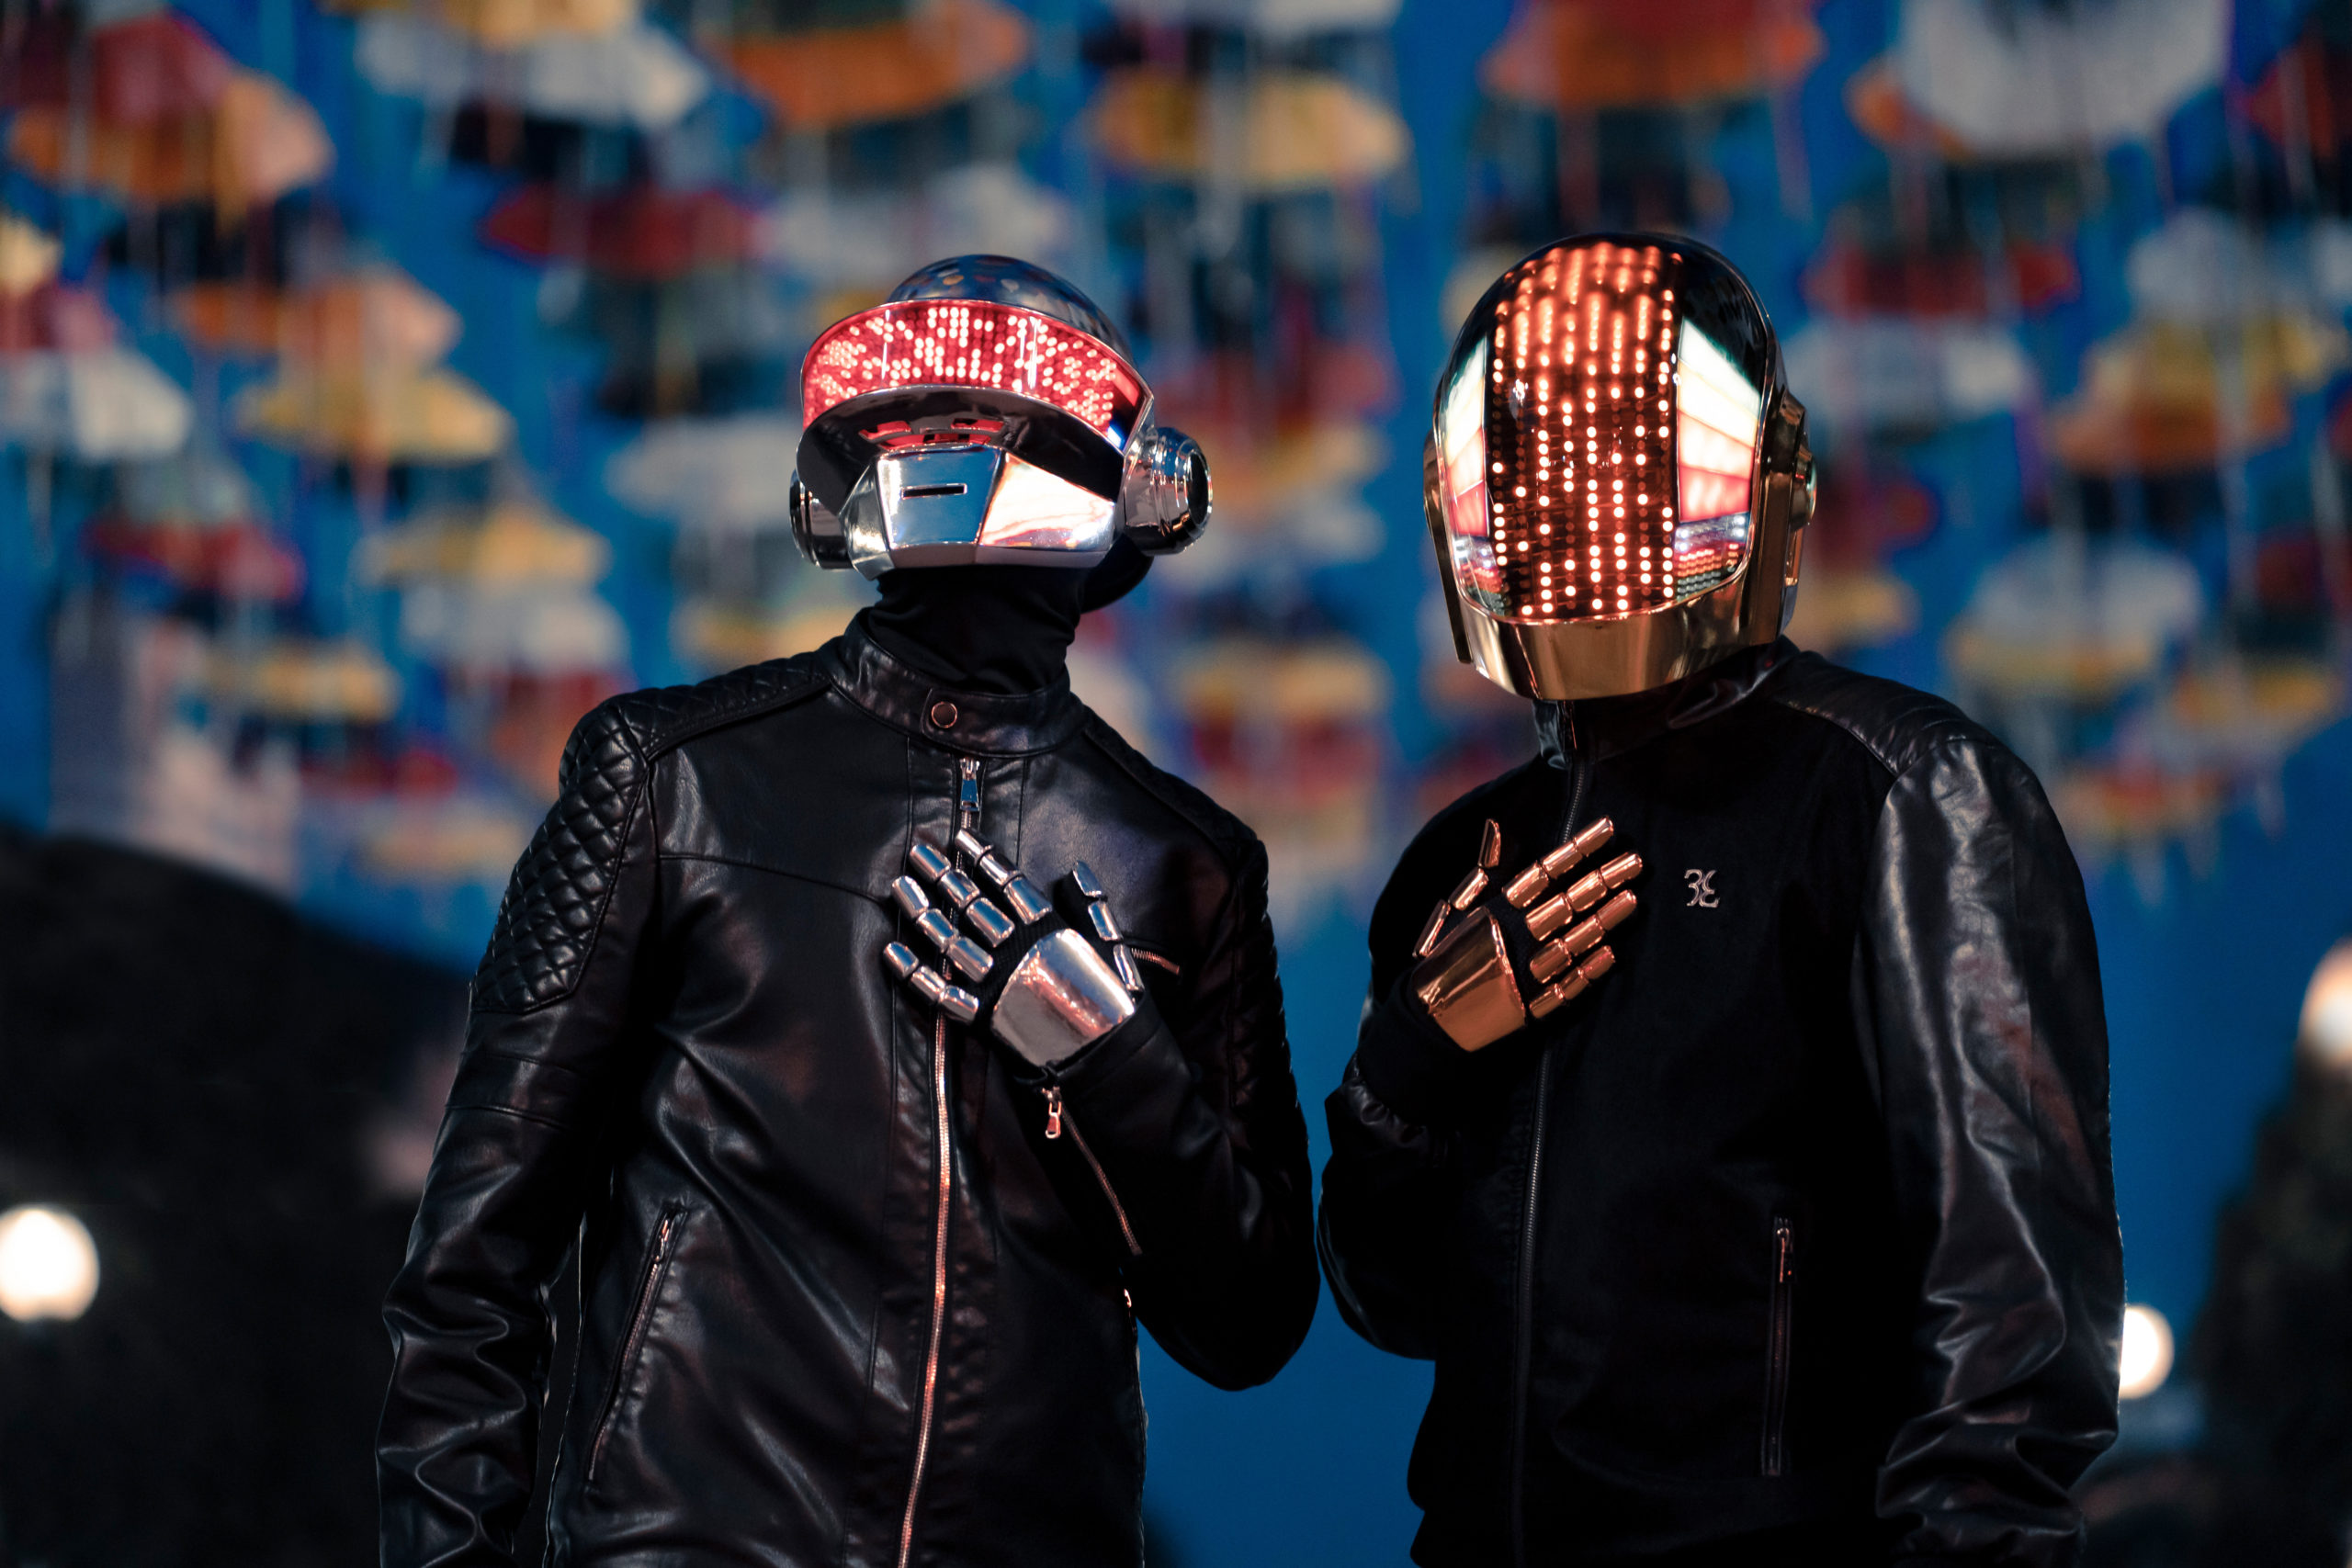 Unmasked Facts About Daft Punk, The Electric Duo